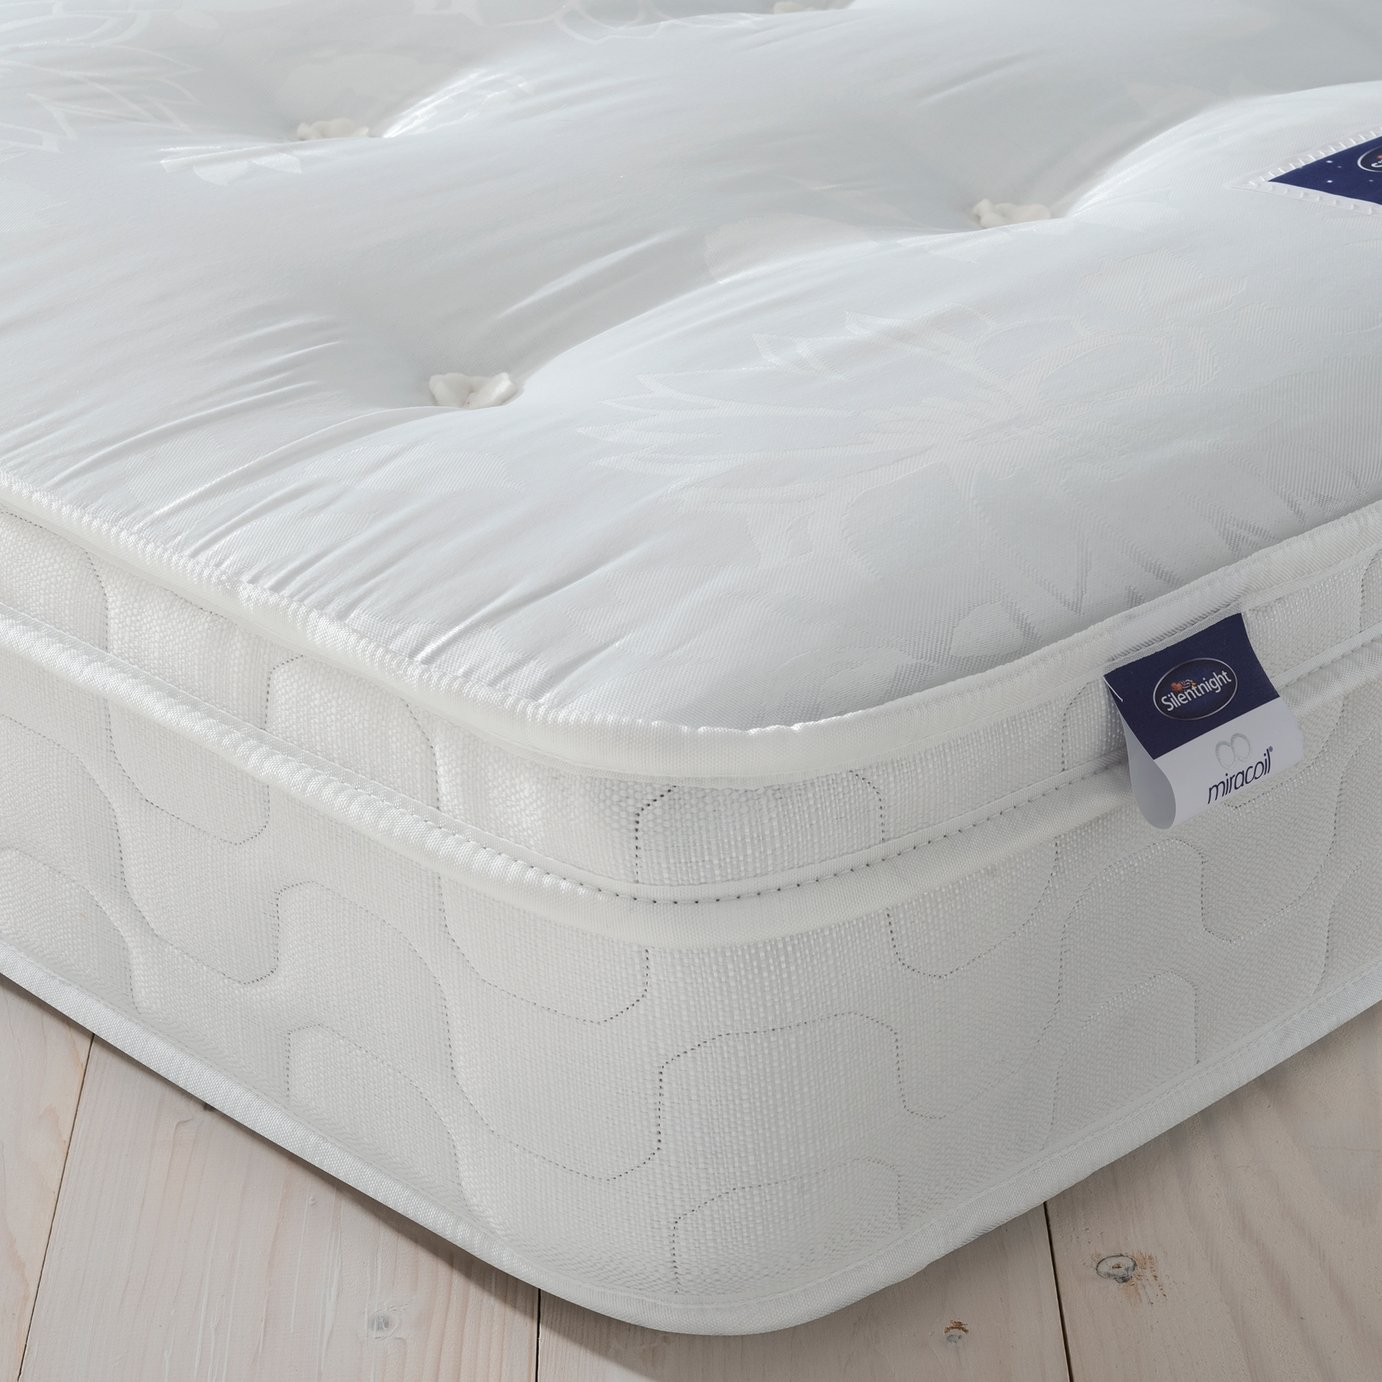 Silentnight - Miracoil Travis Orthopaedic - Single Mattress at Argos